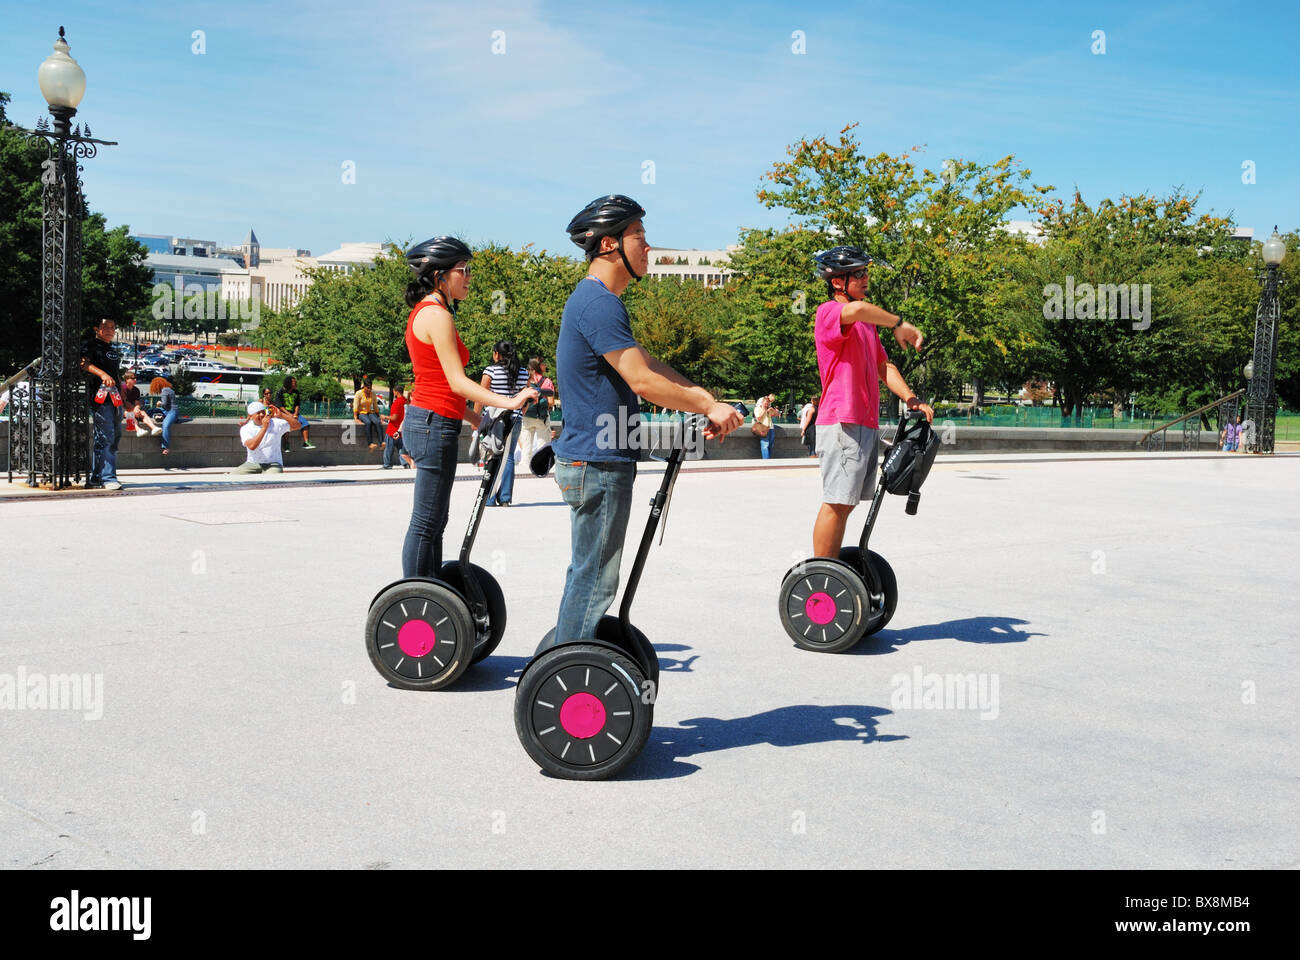 Sightseer tourists on Segway personal transporters in Washington, DC. - Stock Image